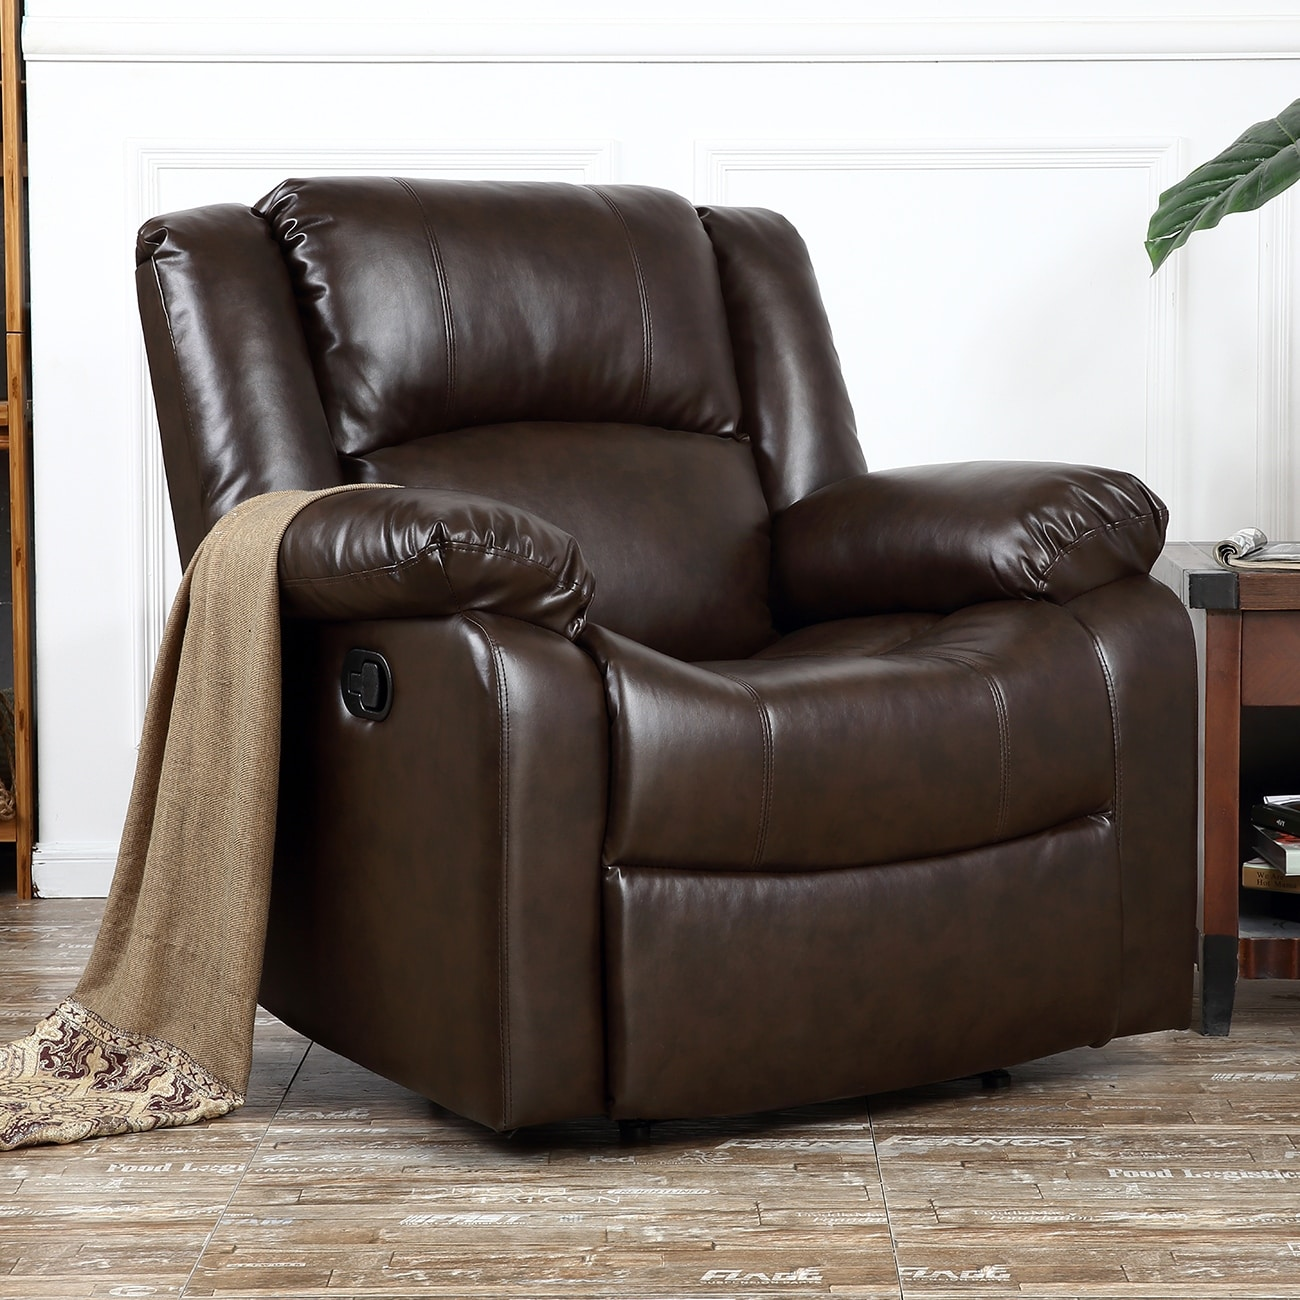 Pleasant Buy Assembled Faux Leather Recliner Chairs Rocking Gamerscity Chair Design For Home Gamerscityorg